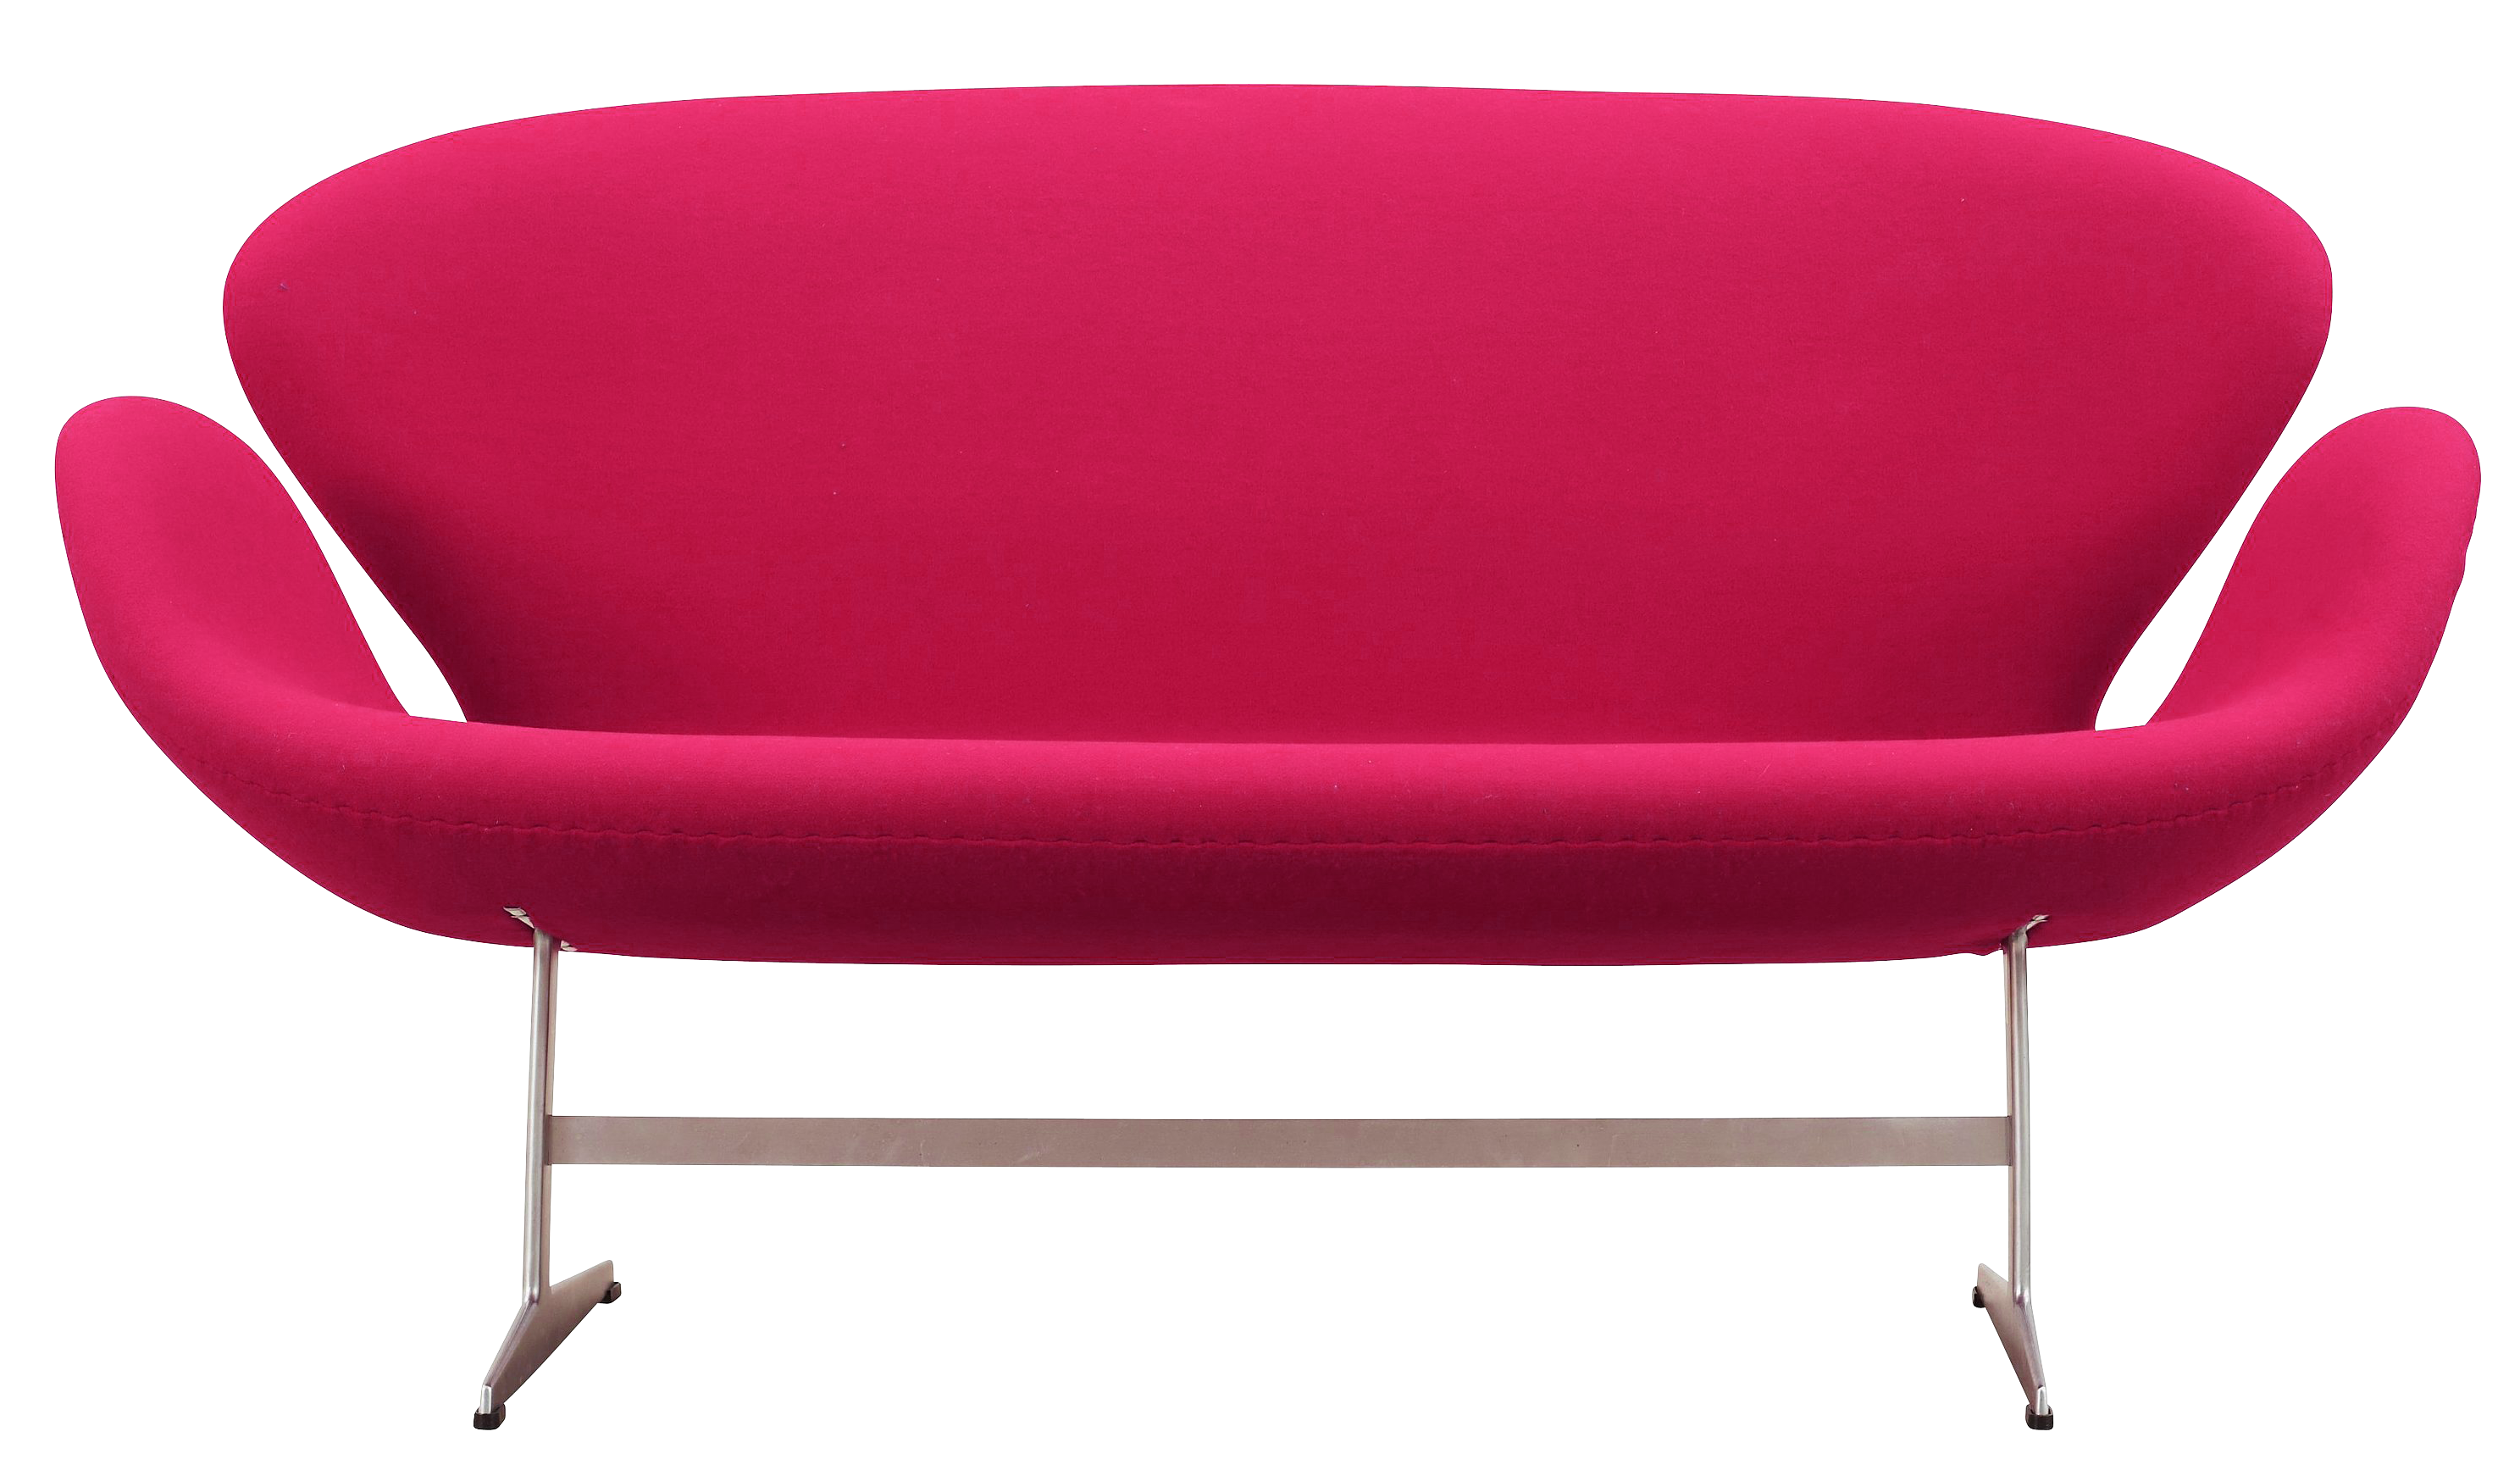 Red Sofa Furniture Icon Png i